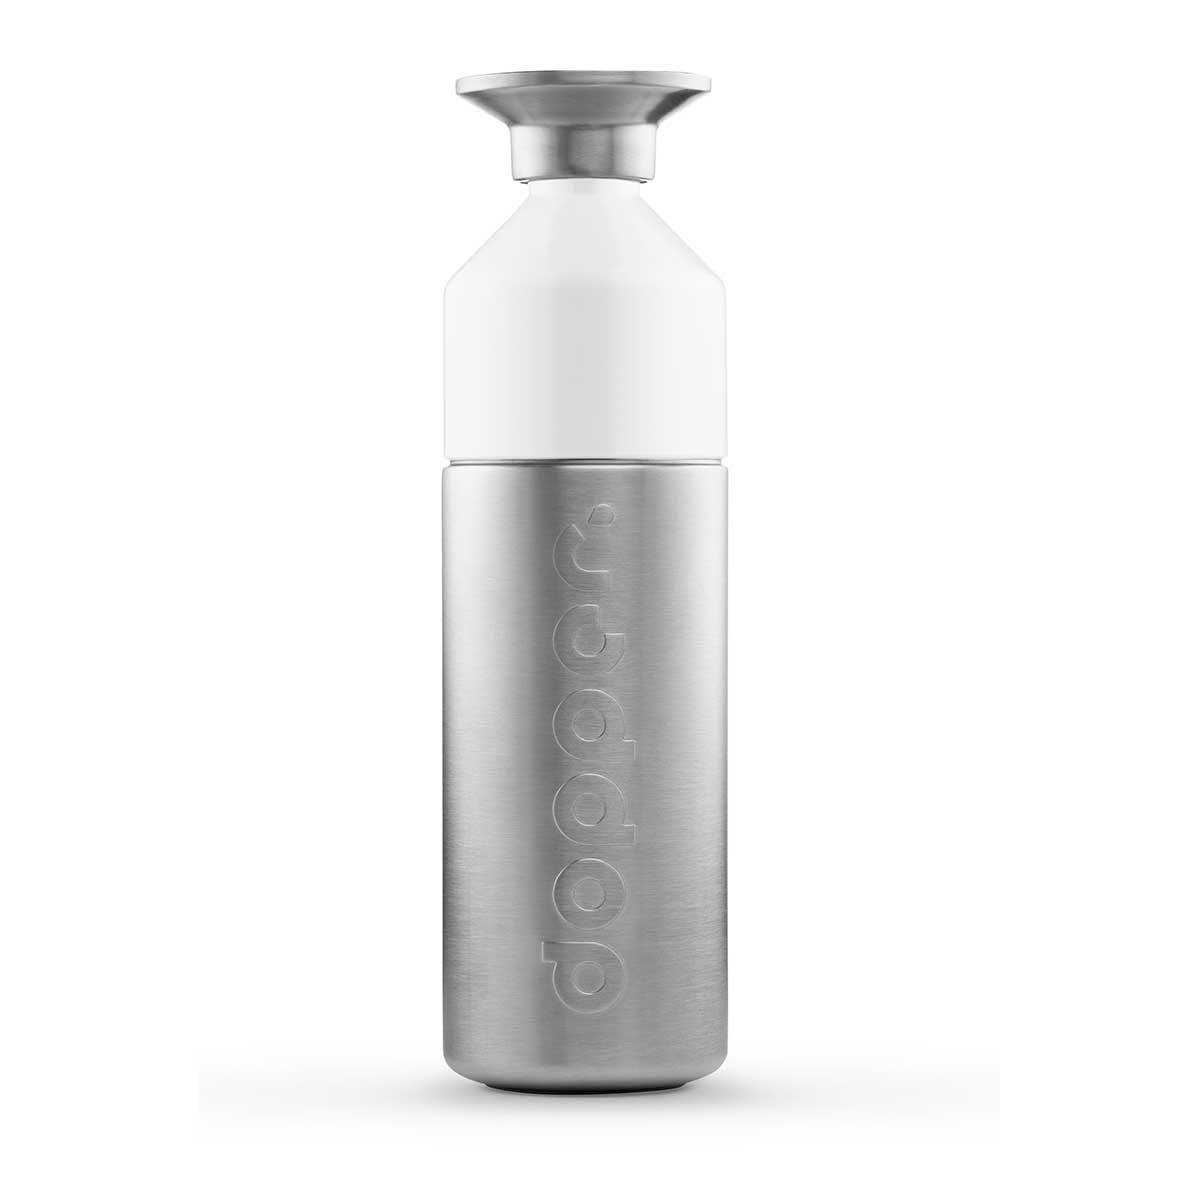 DOPPER ACERO 800ml